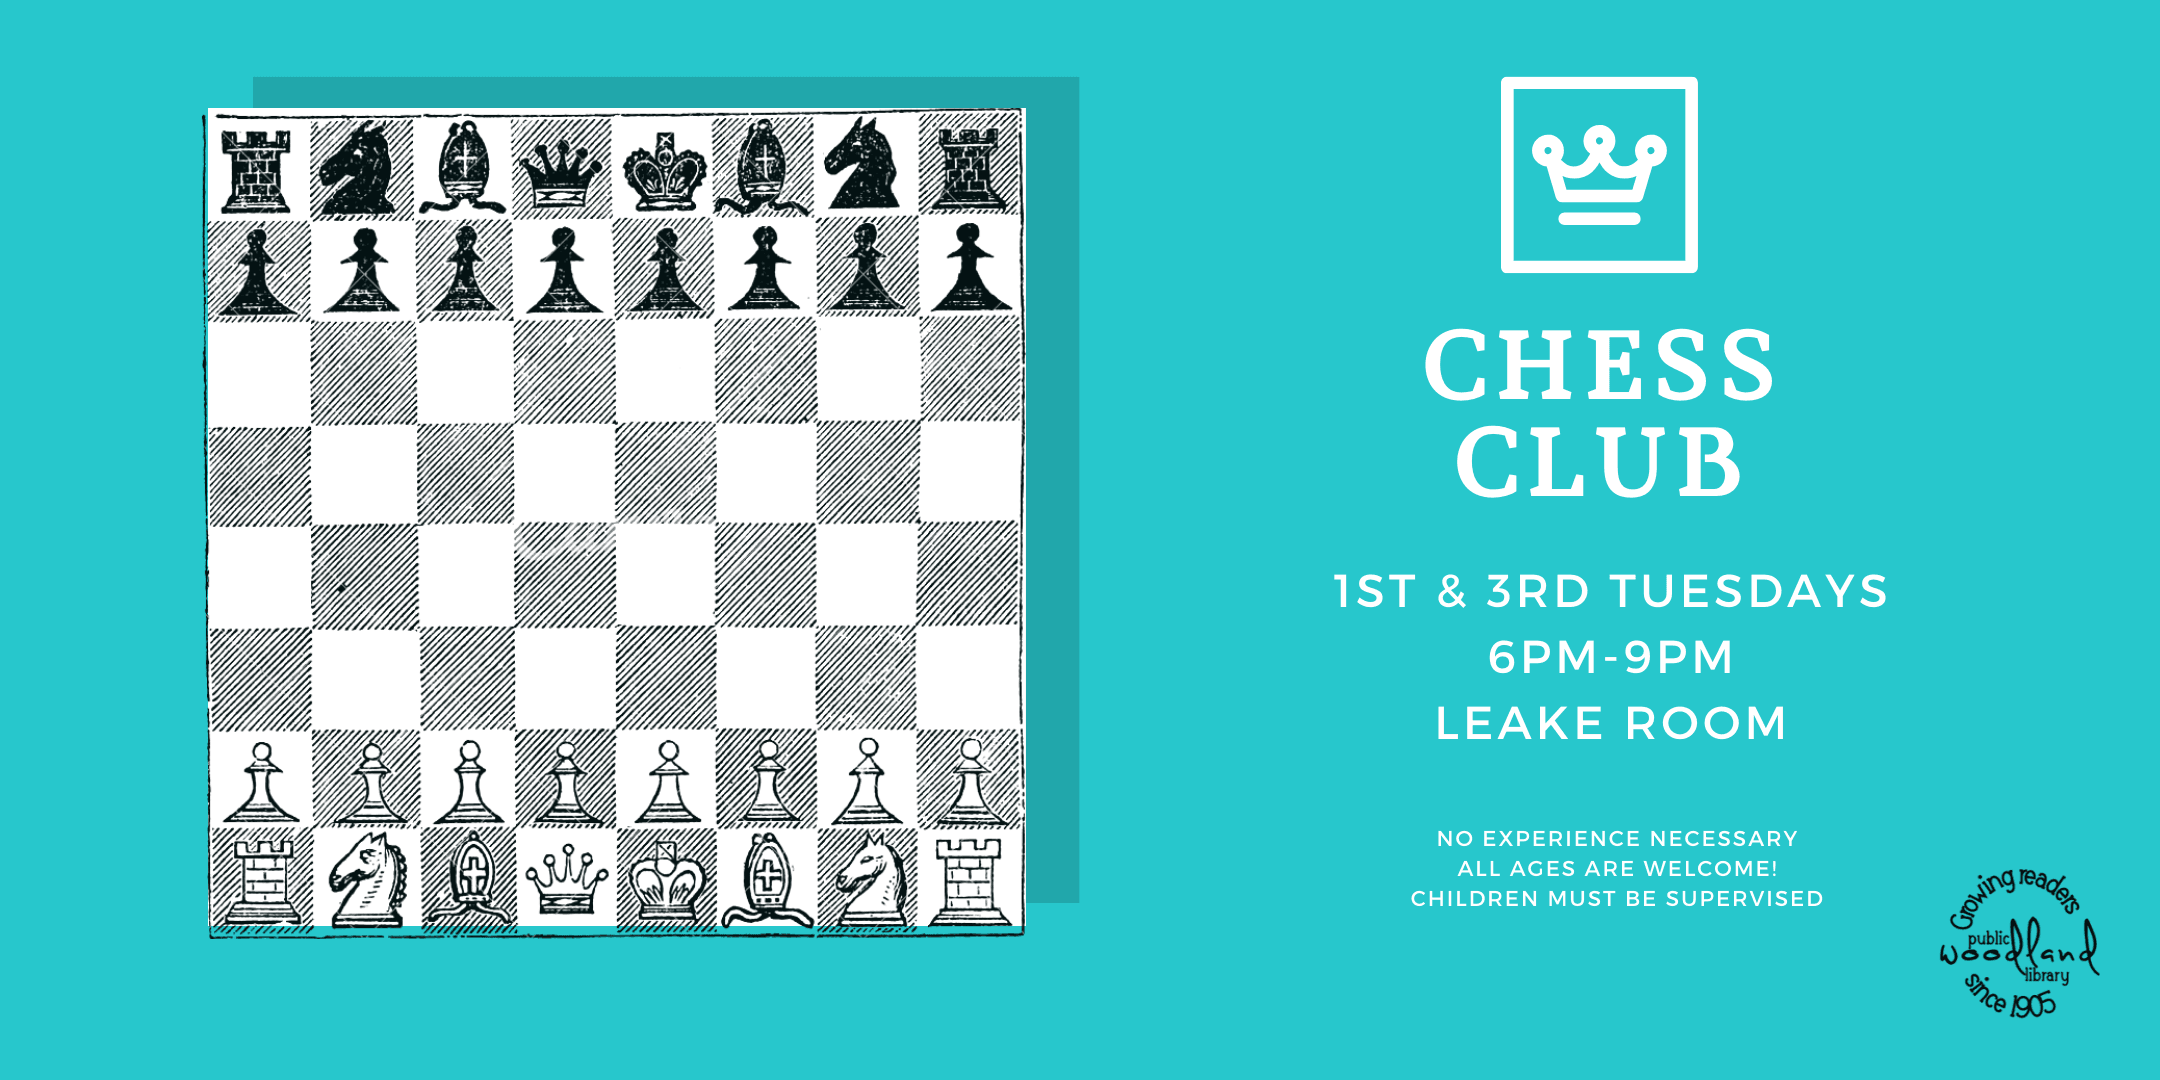 Chess Club 2020 Event